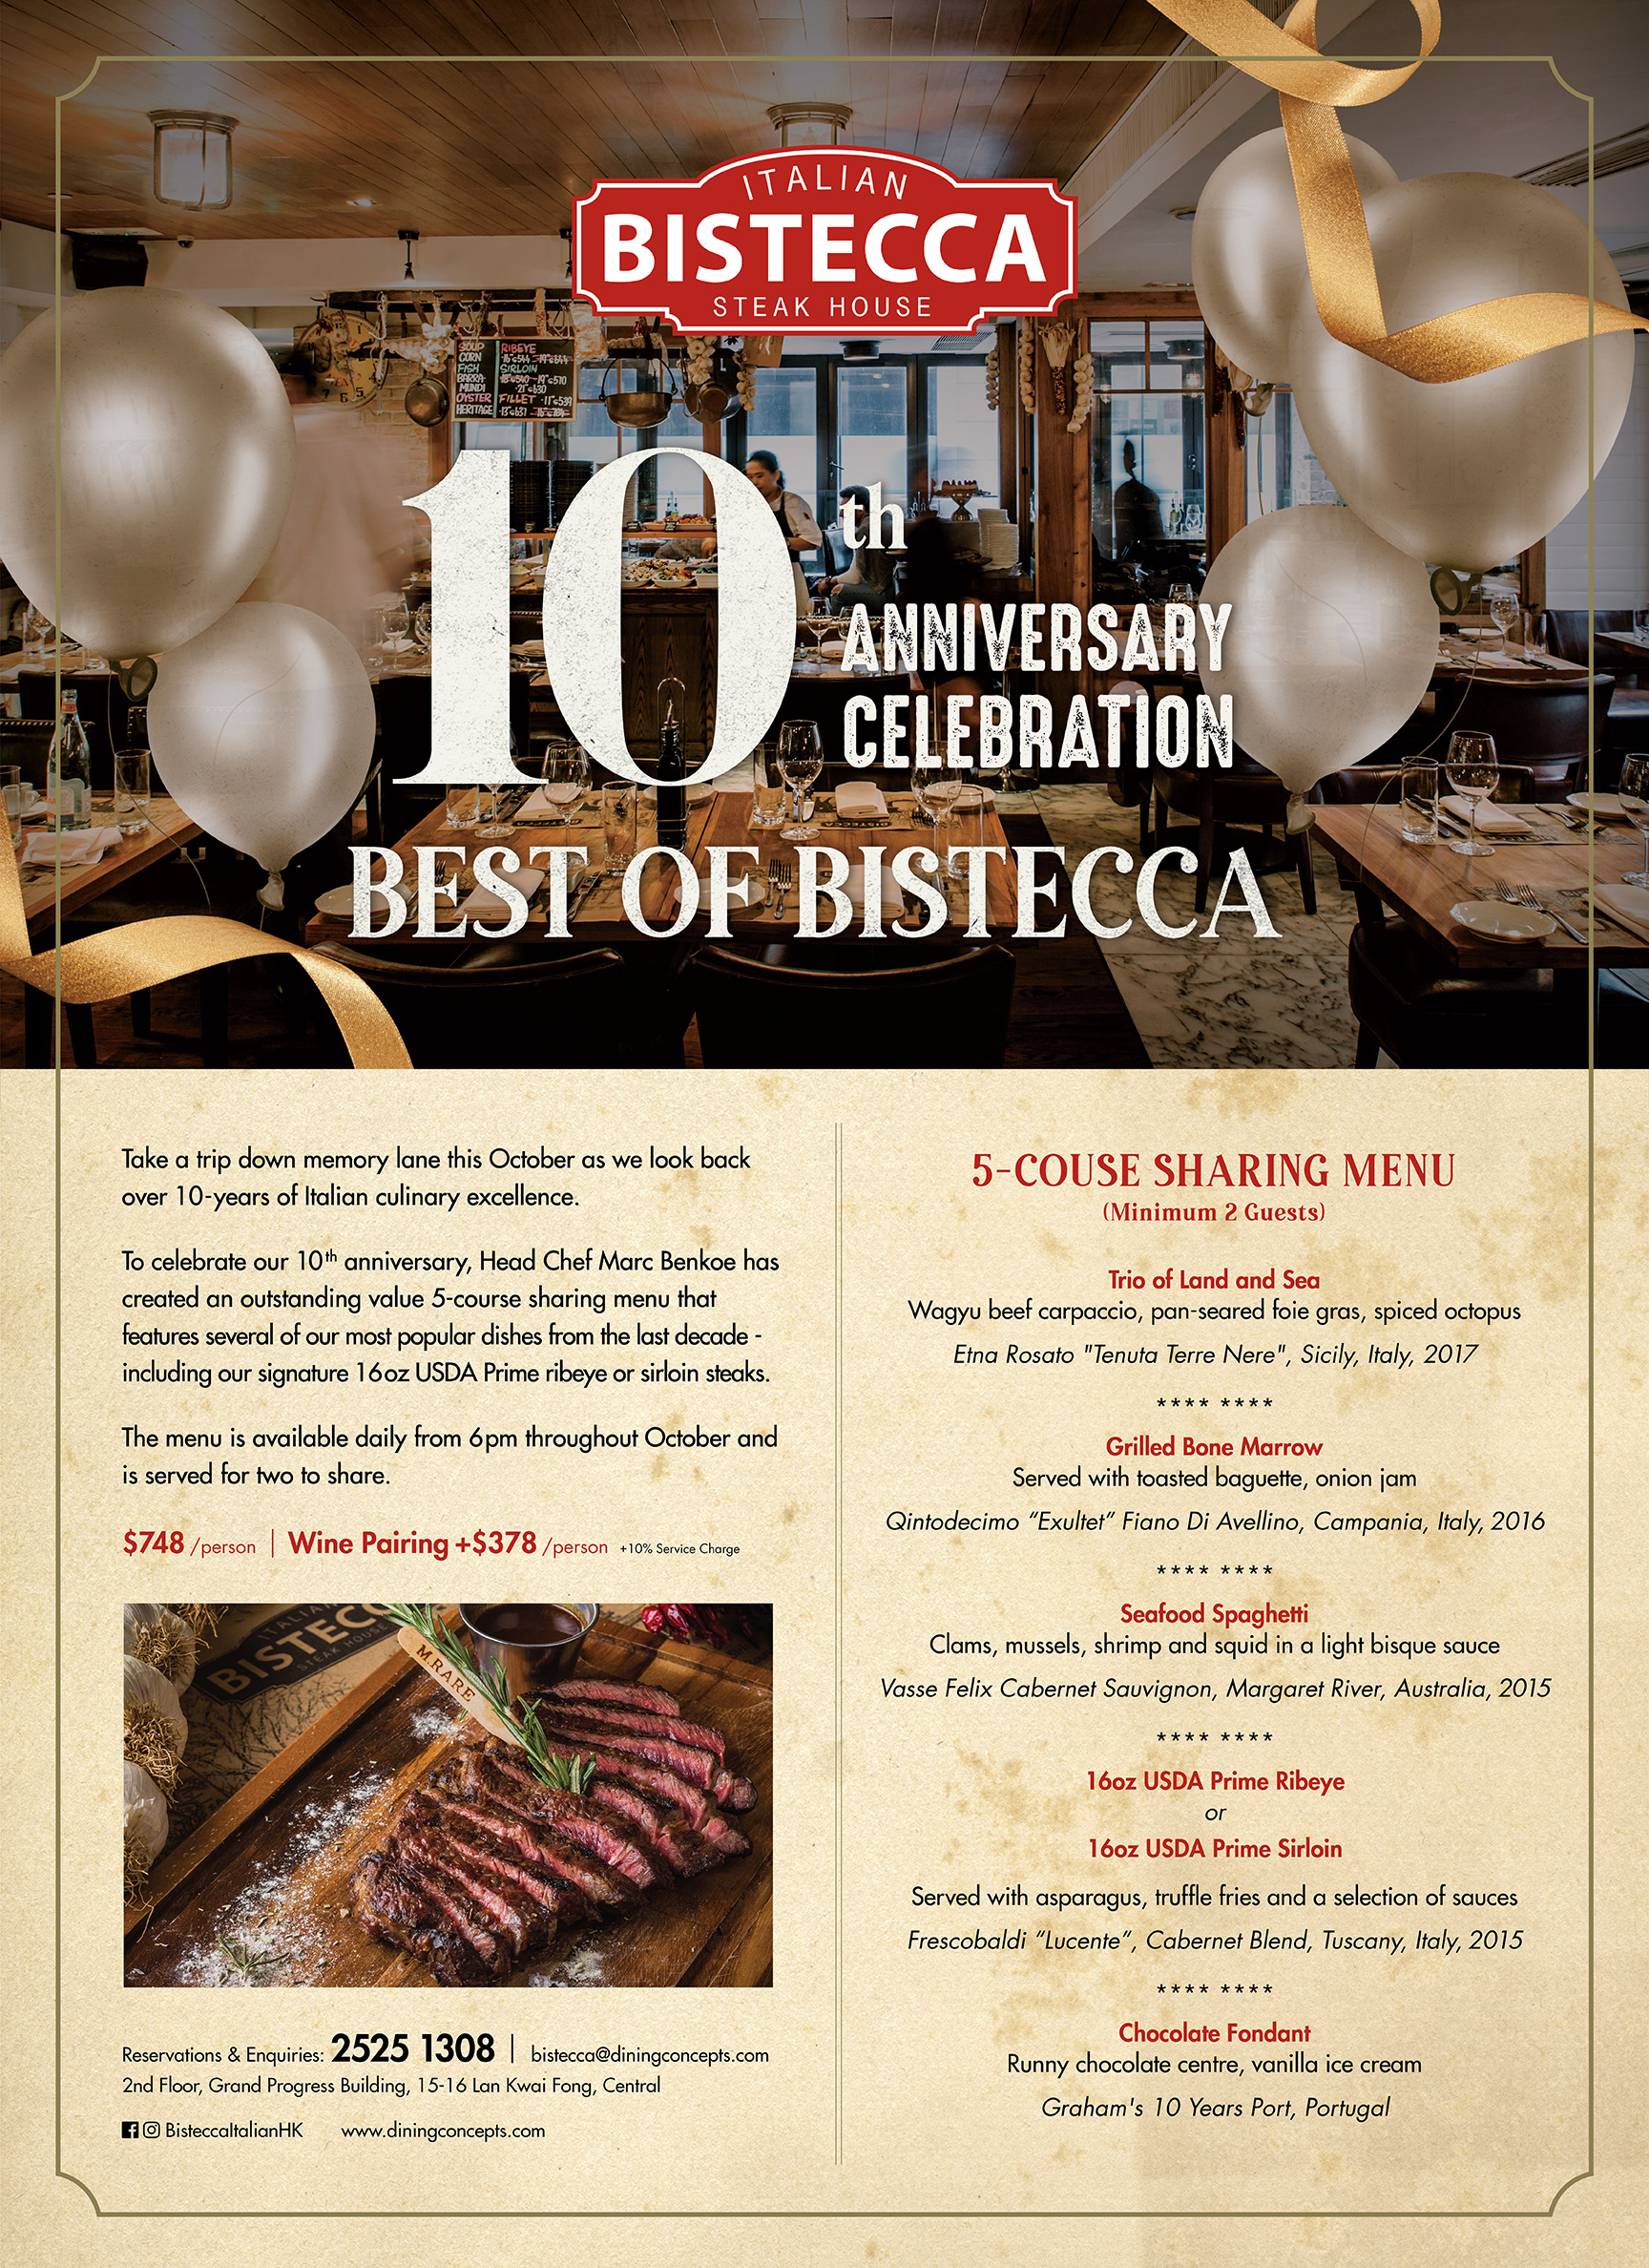 Best of Bistecca - 10th Anniversary Celebration